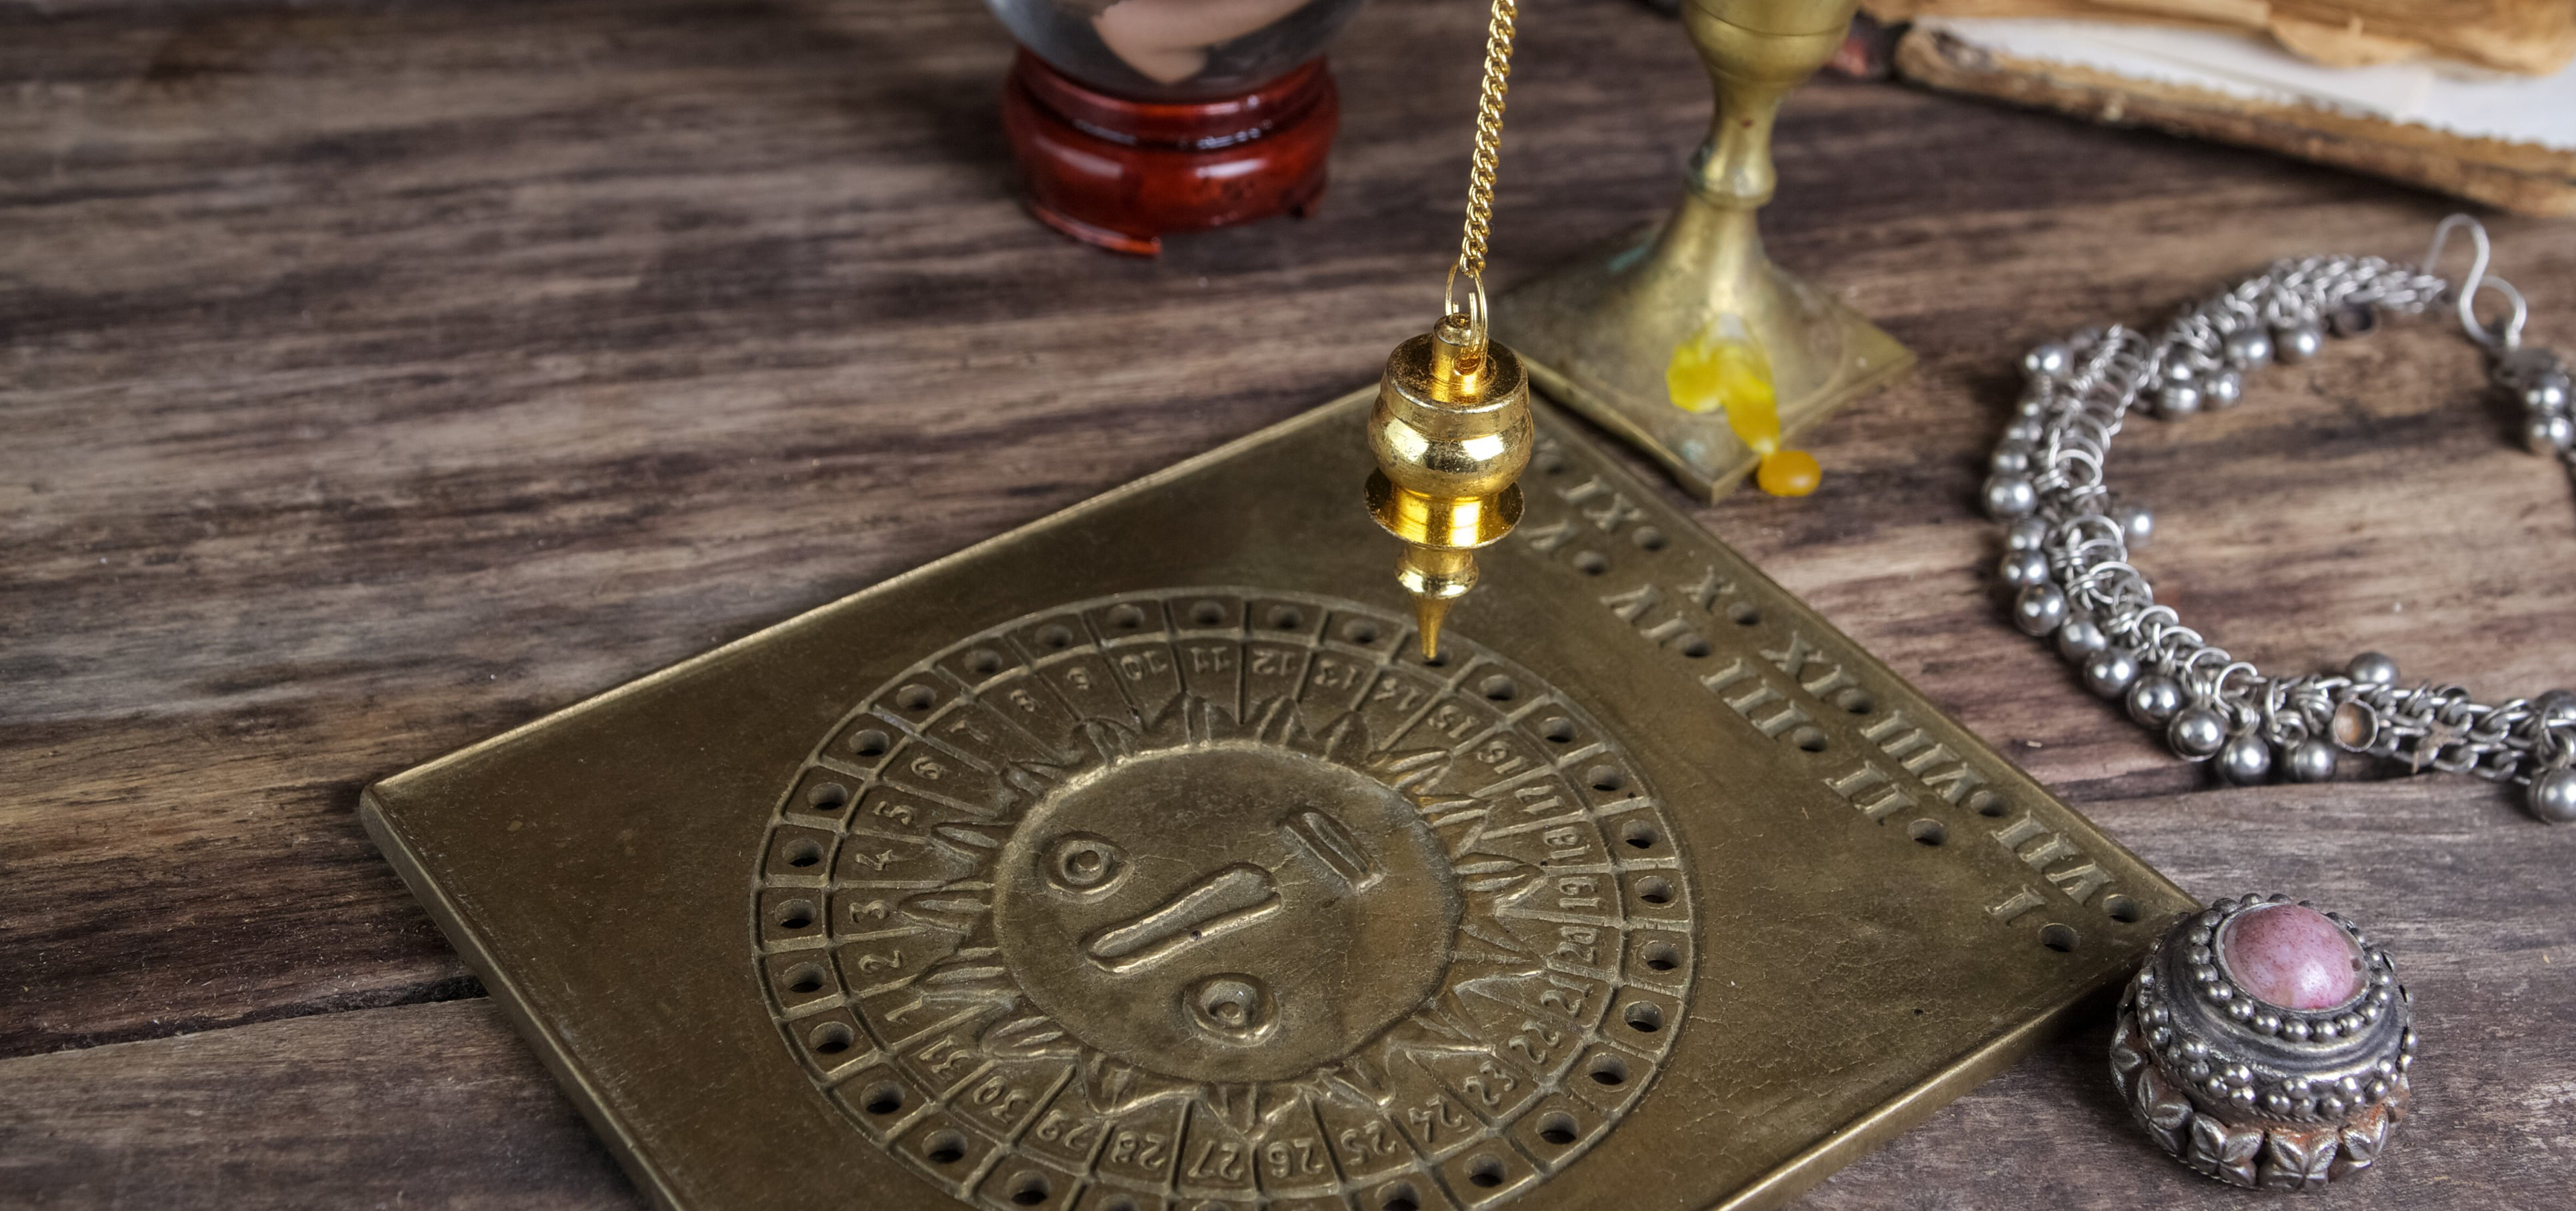 horoscope pendule